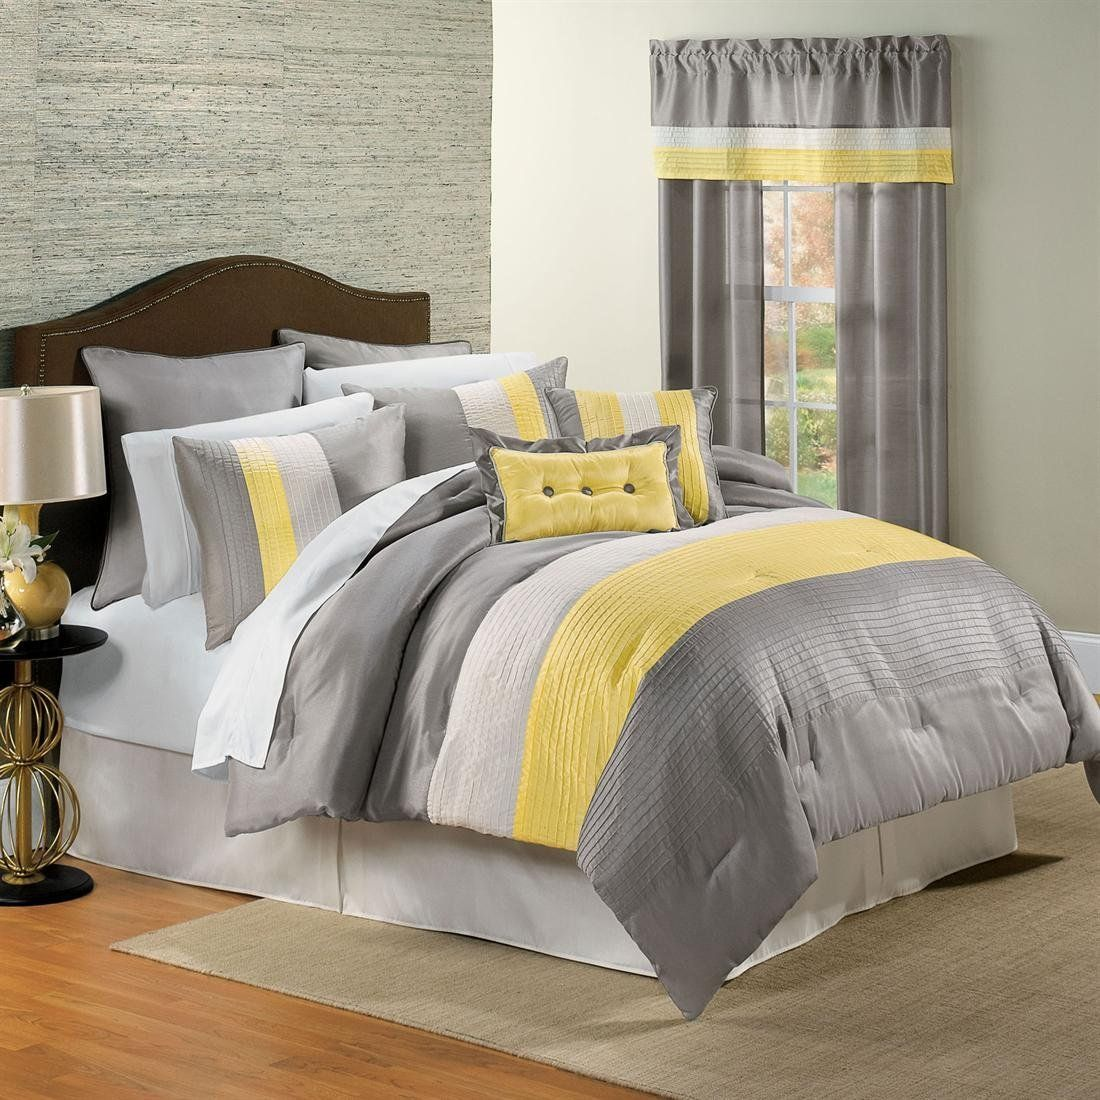 Lime Green And Gray Bedding | Grey bedroom decor, White ...